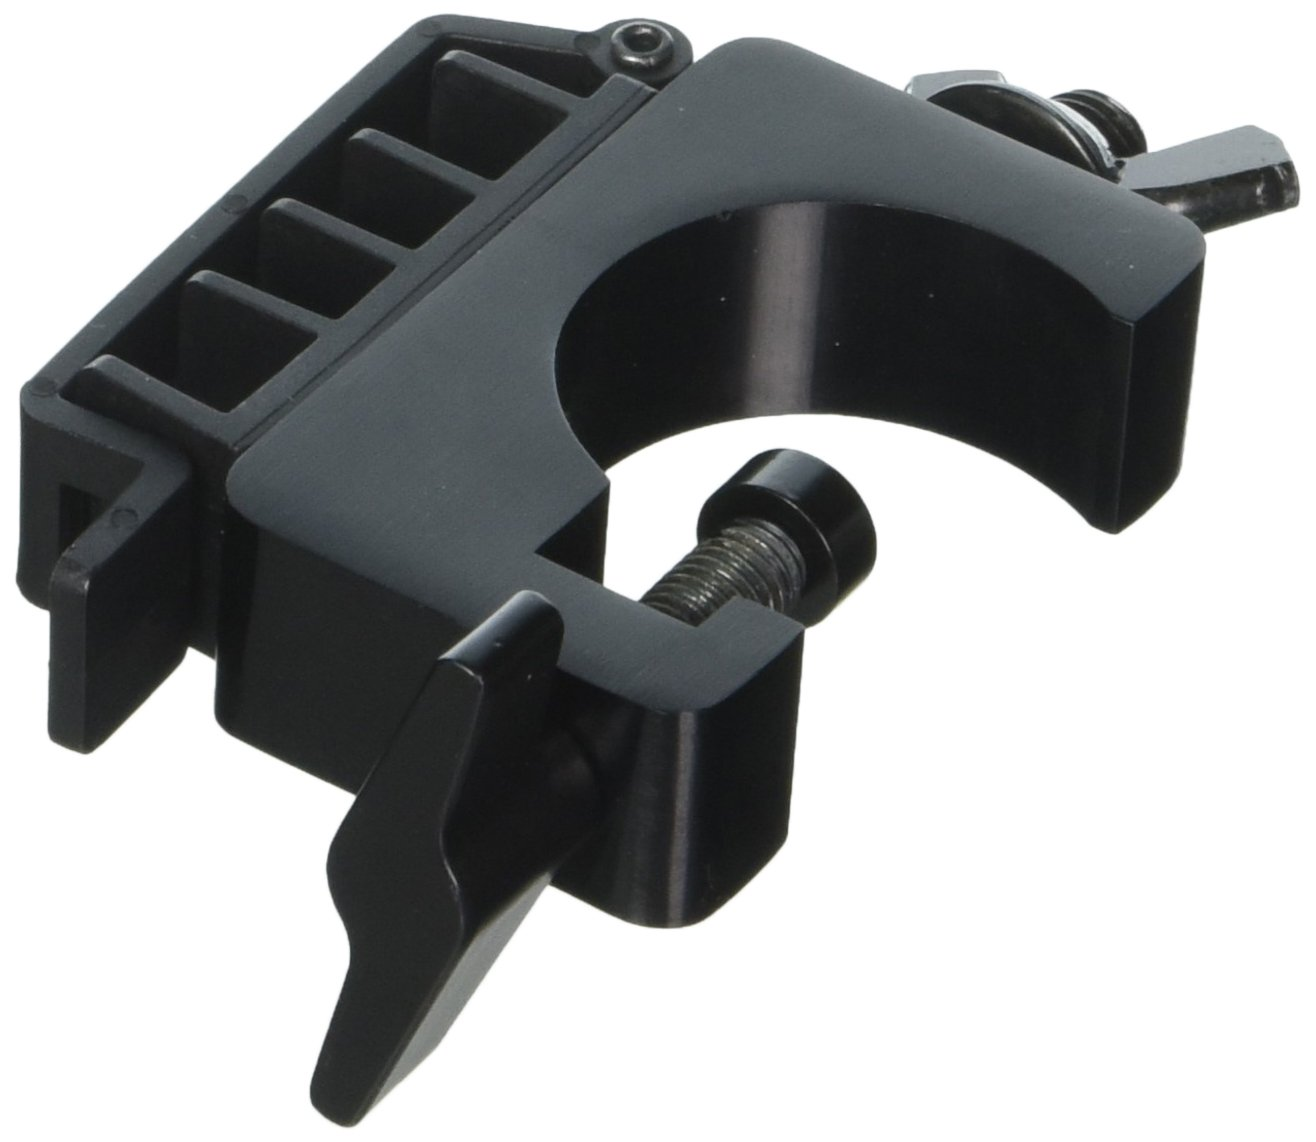 On-Stage LTA4770 Lighting Clamp with Cable Management System for Lighting/Speaker Stands (Pair) On Stage